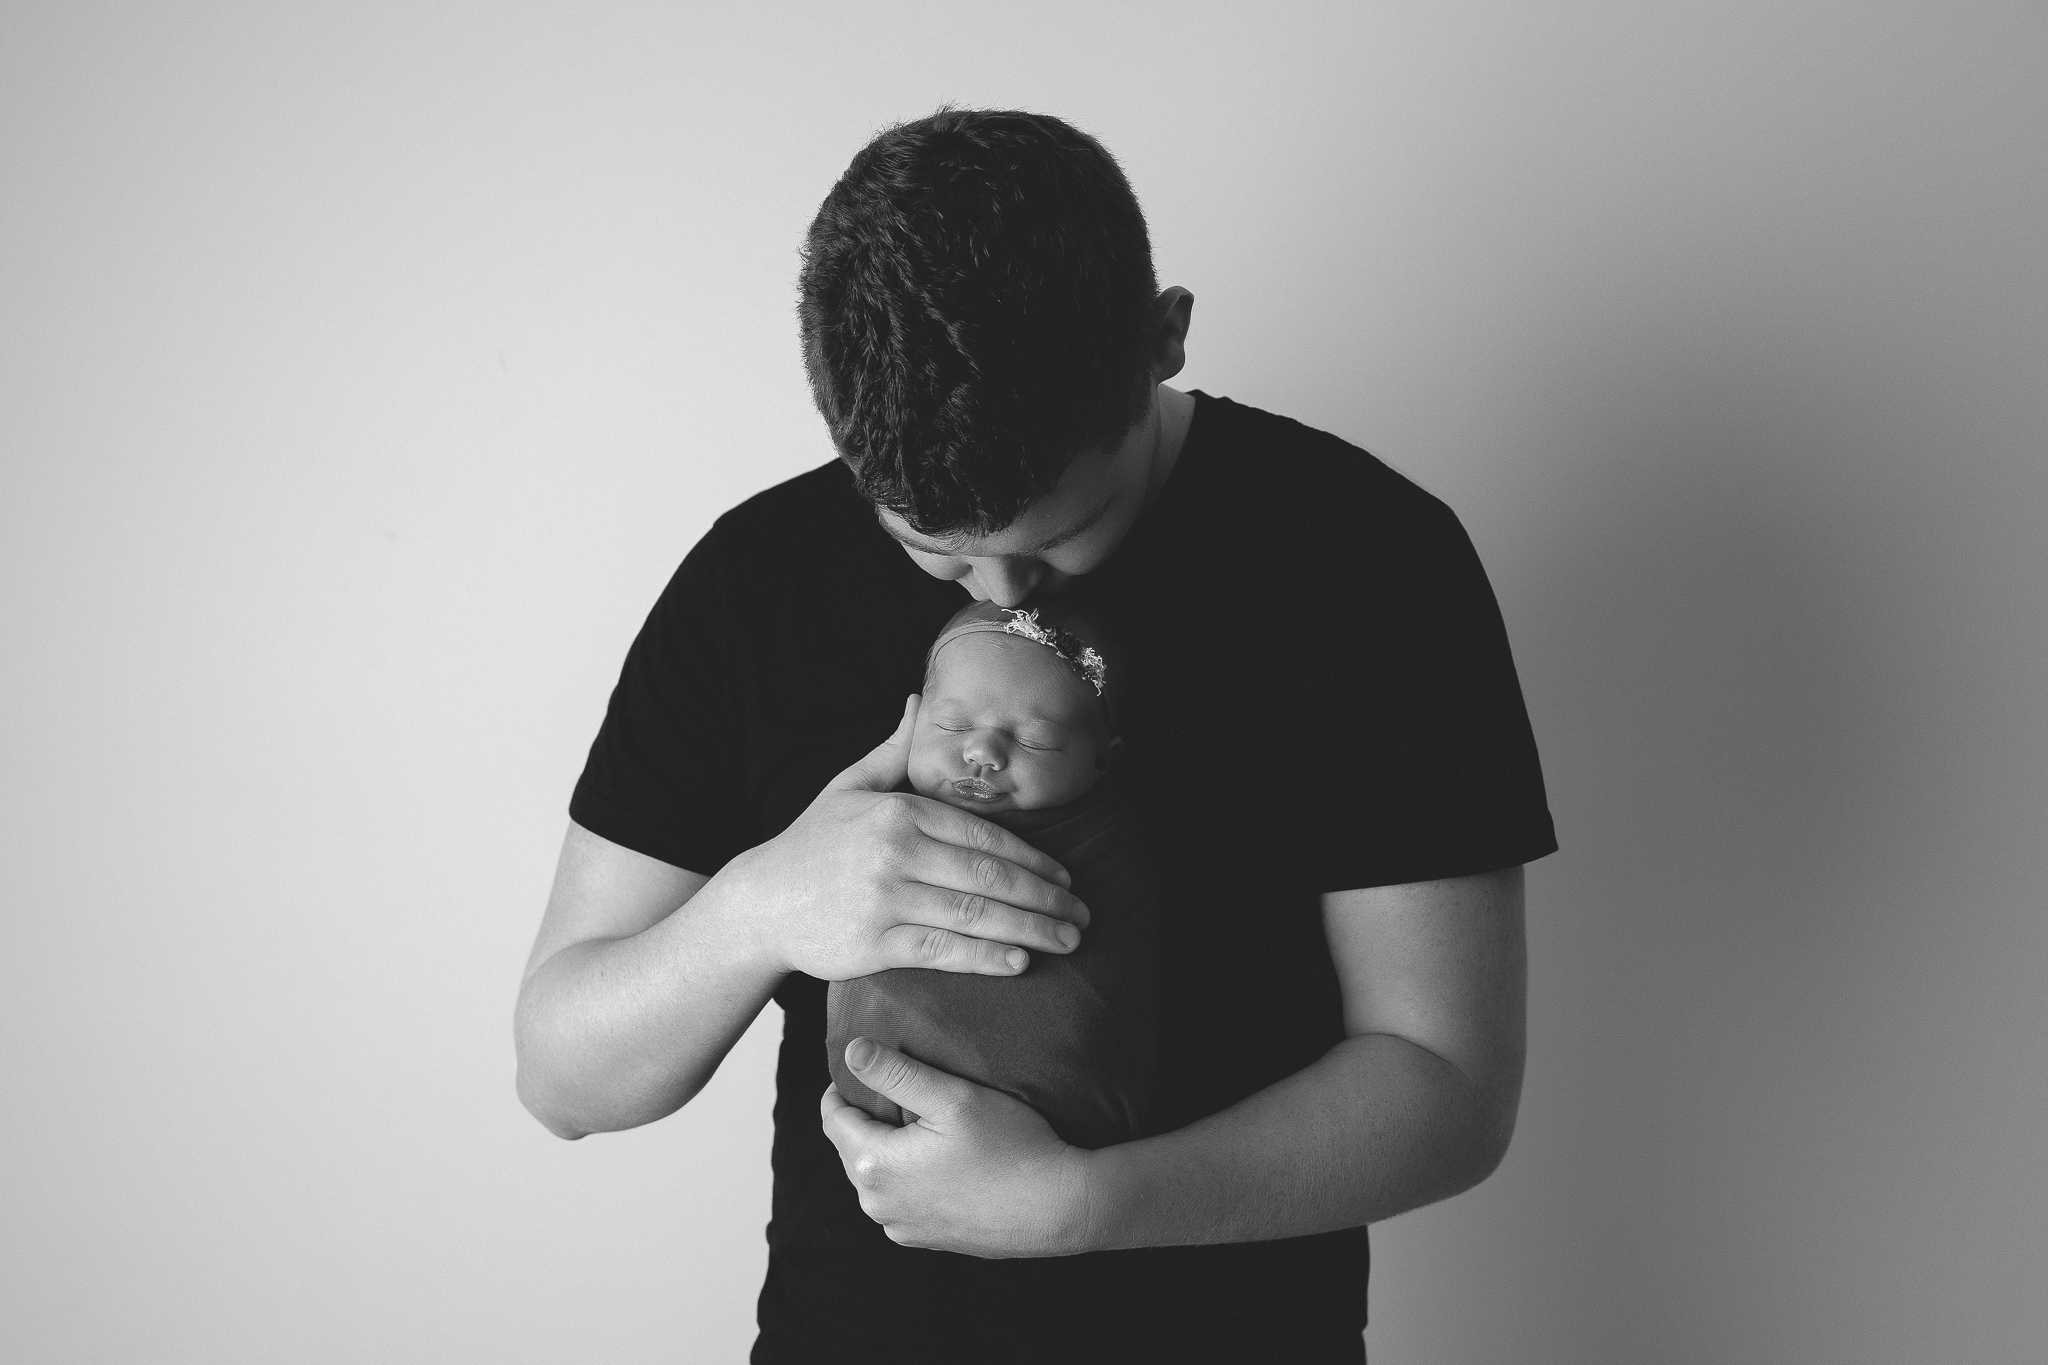 family-love-baby-father-daughter-portrait-newborn-photography-adelaide